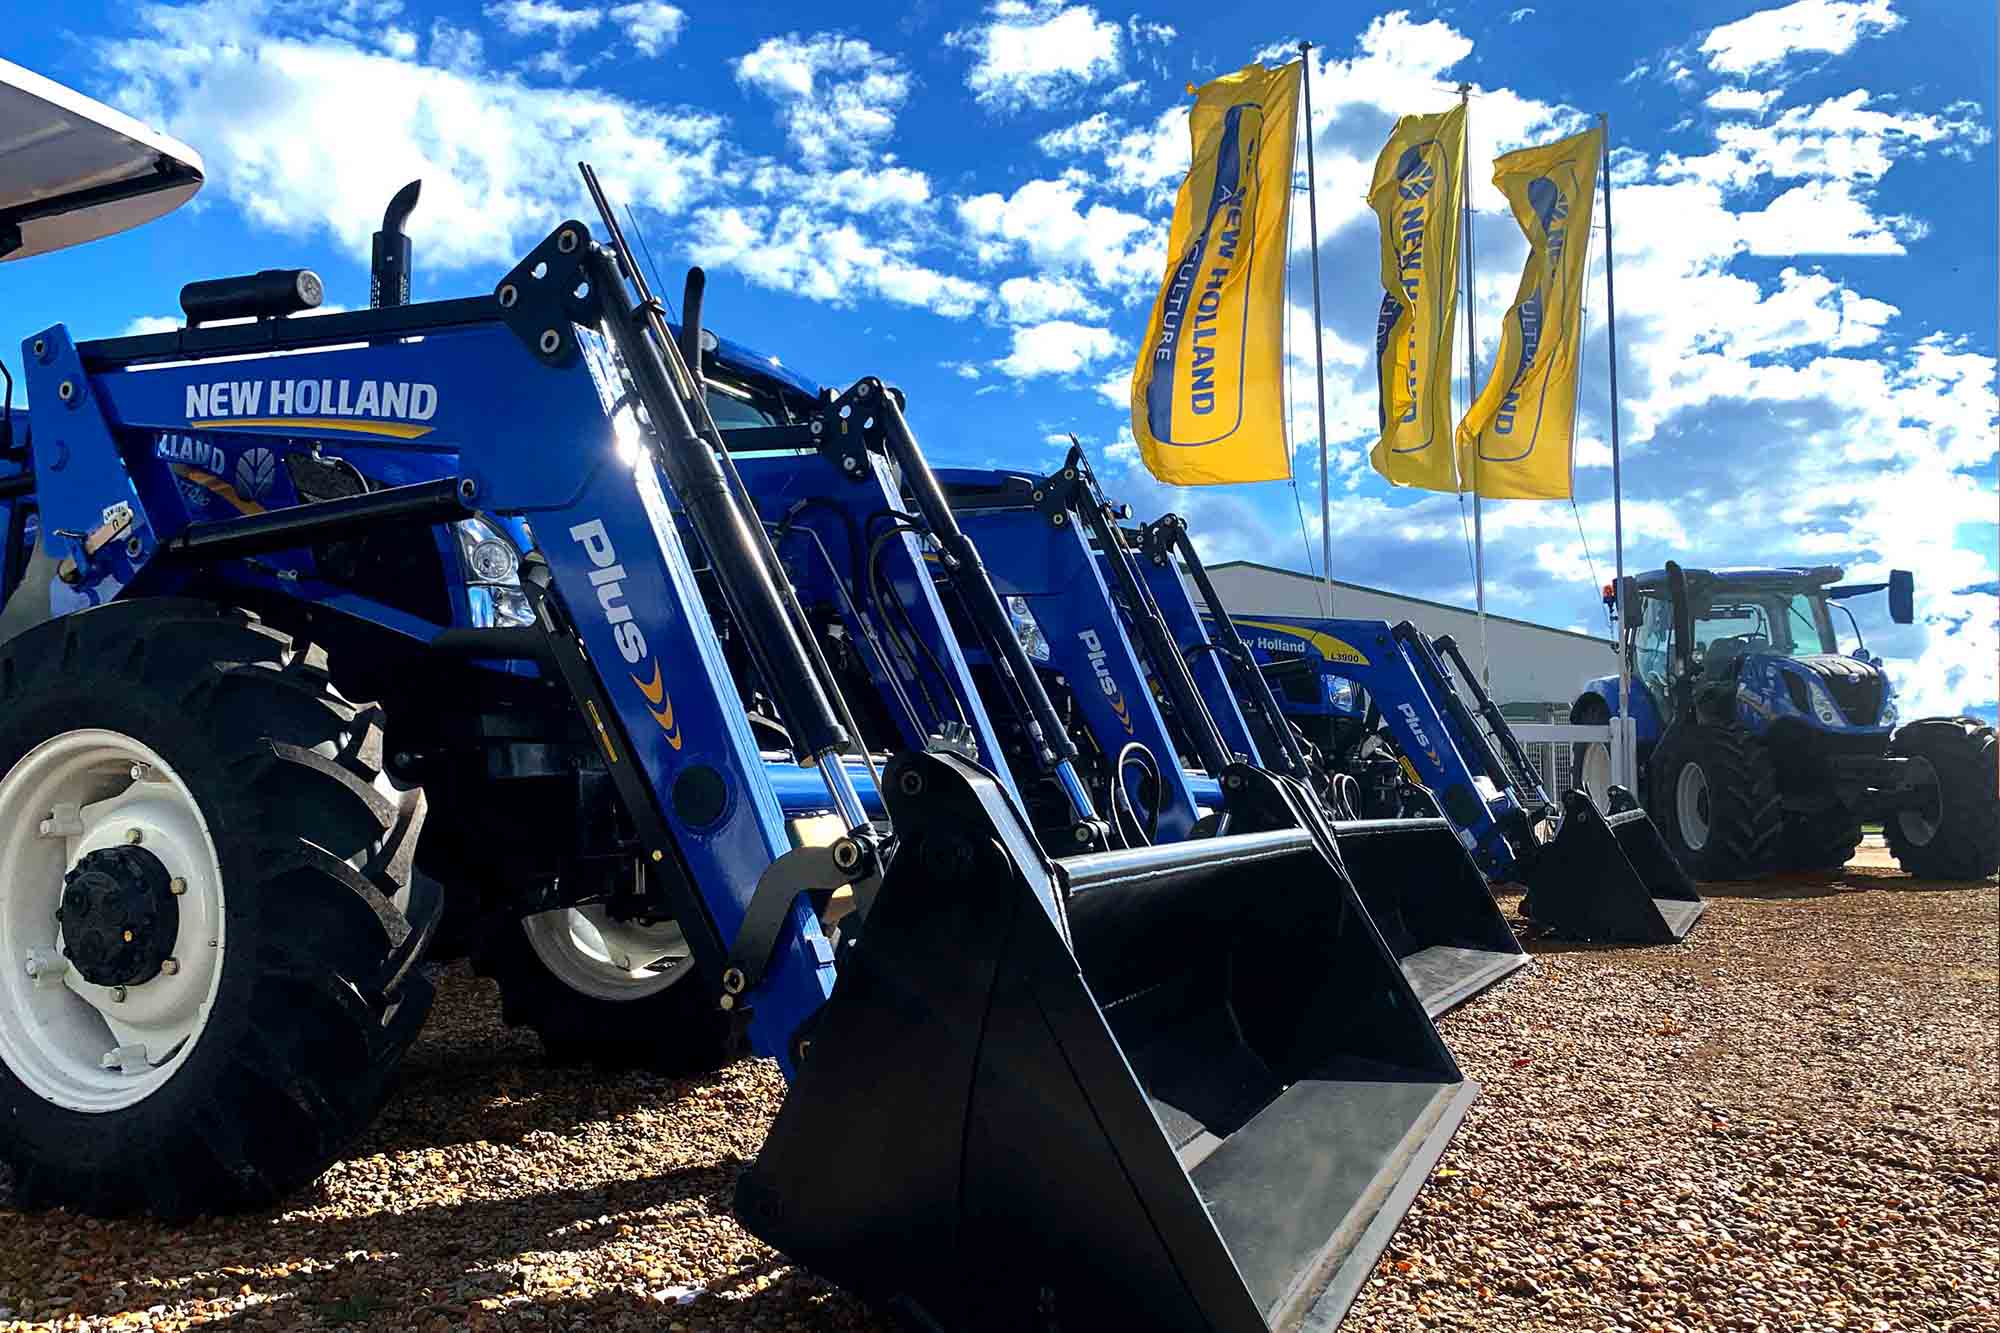 Line up of new holland tractors close up with flags flying in the sky